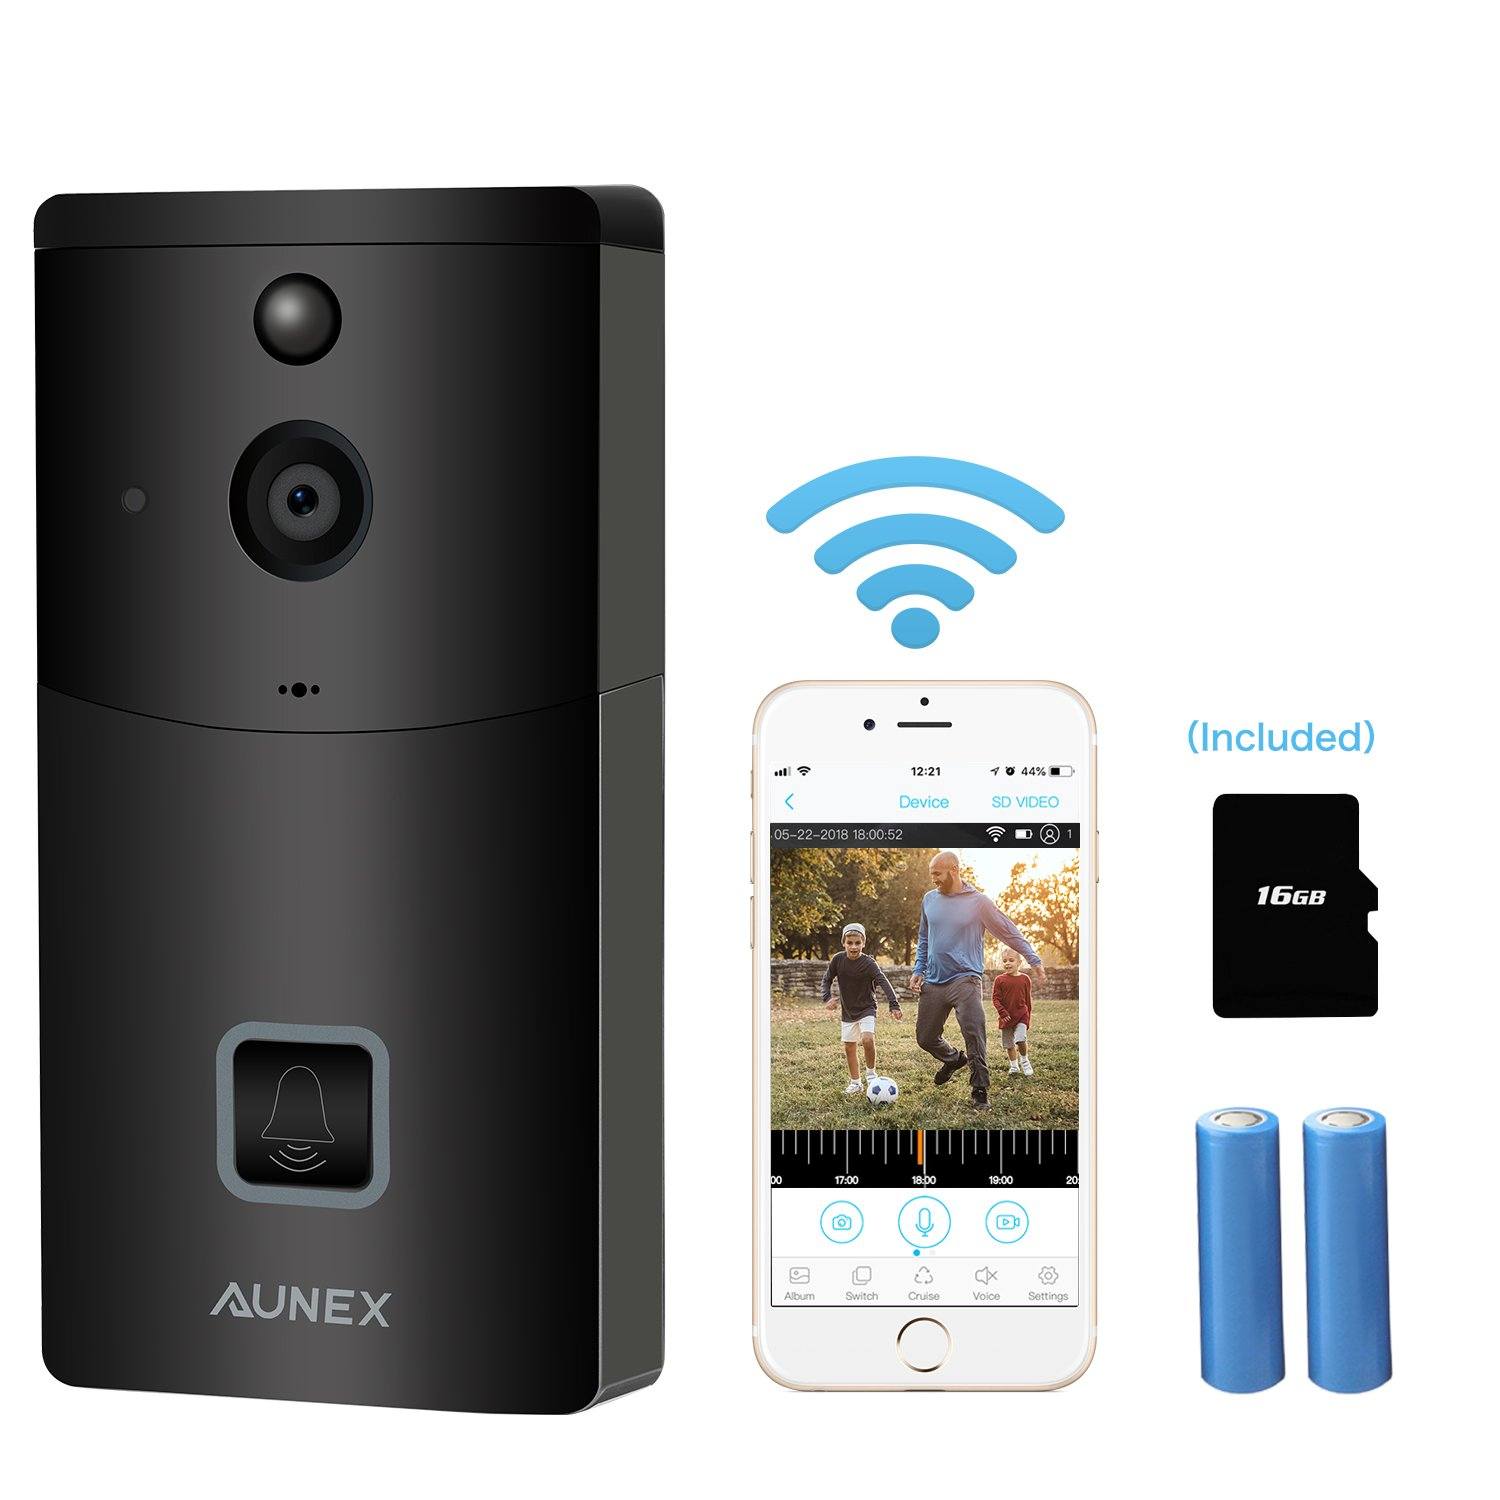 Video Doorbell Wireless Smart 720P HD Security Camera Doorbell with 16G Card 2 Batteries Support 2-Way Talk Wide Angle PIR Motion Detection Night Vision and App Control for iOS and Android - Silver AUNEX